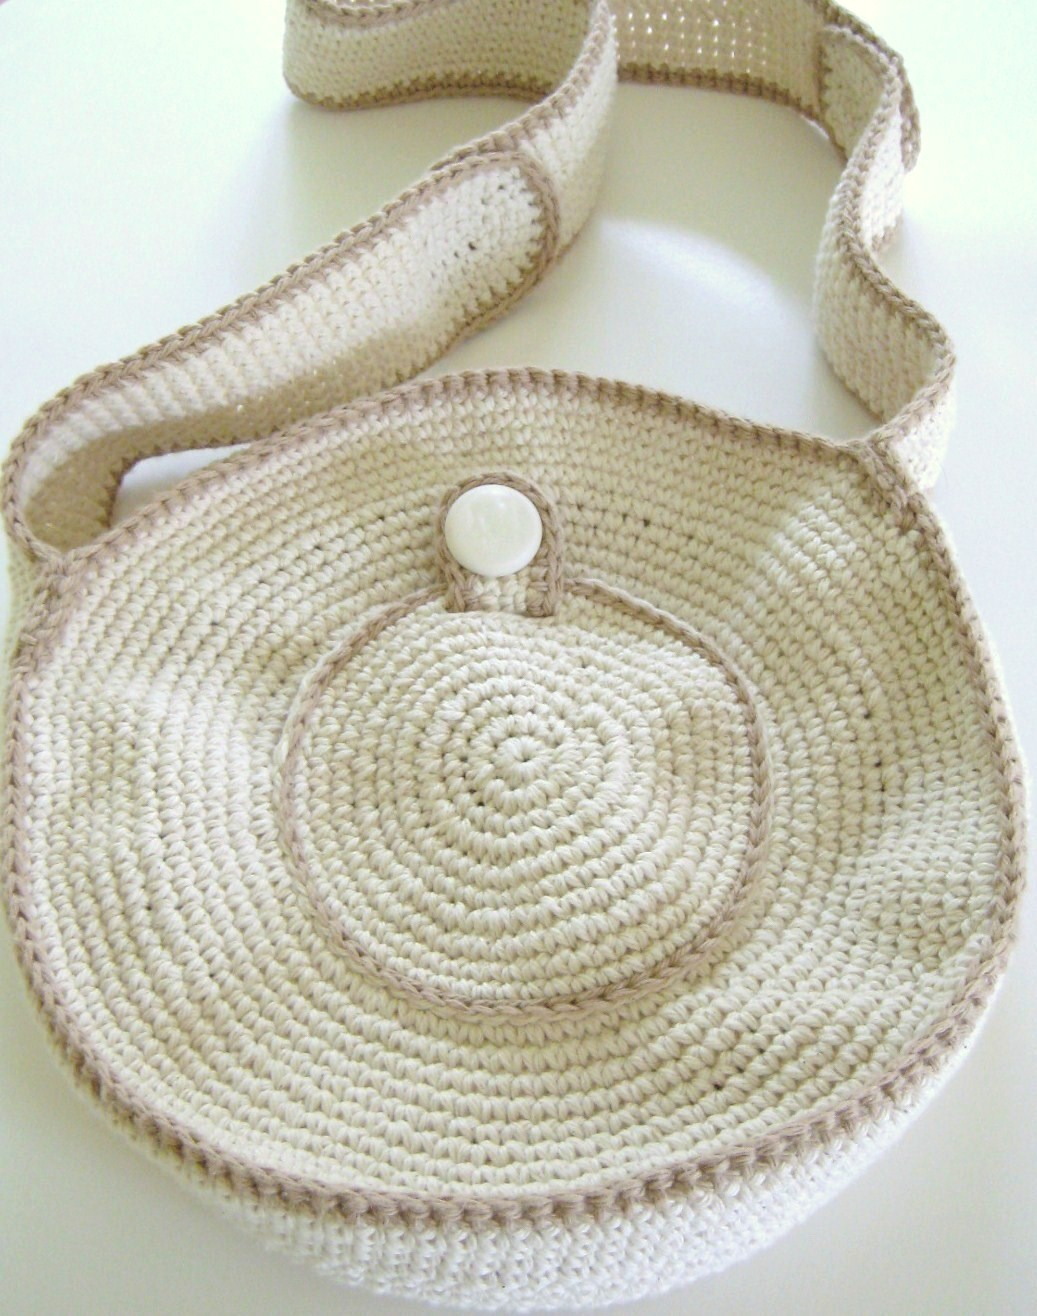 Crochet Circle Bag : ... : Using My Stash of Finished Objects: My Crocheted Vintage Circle Bag